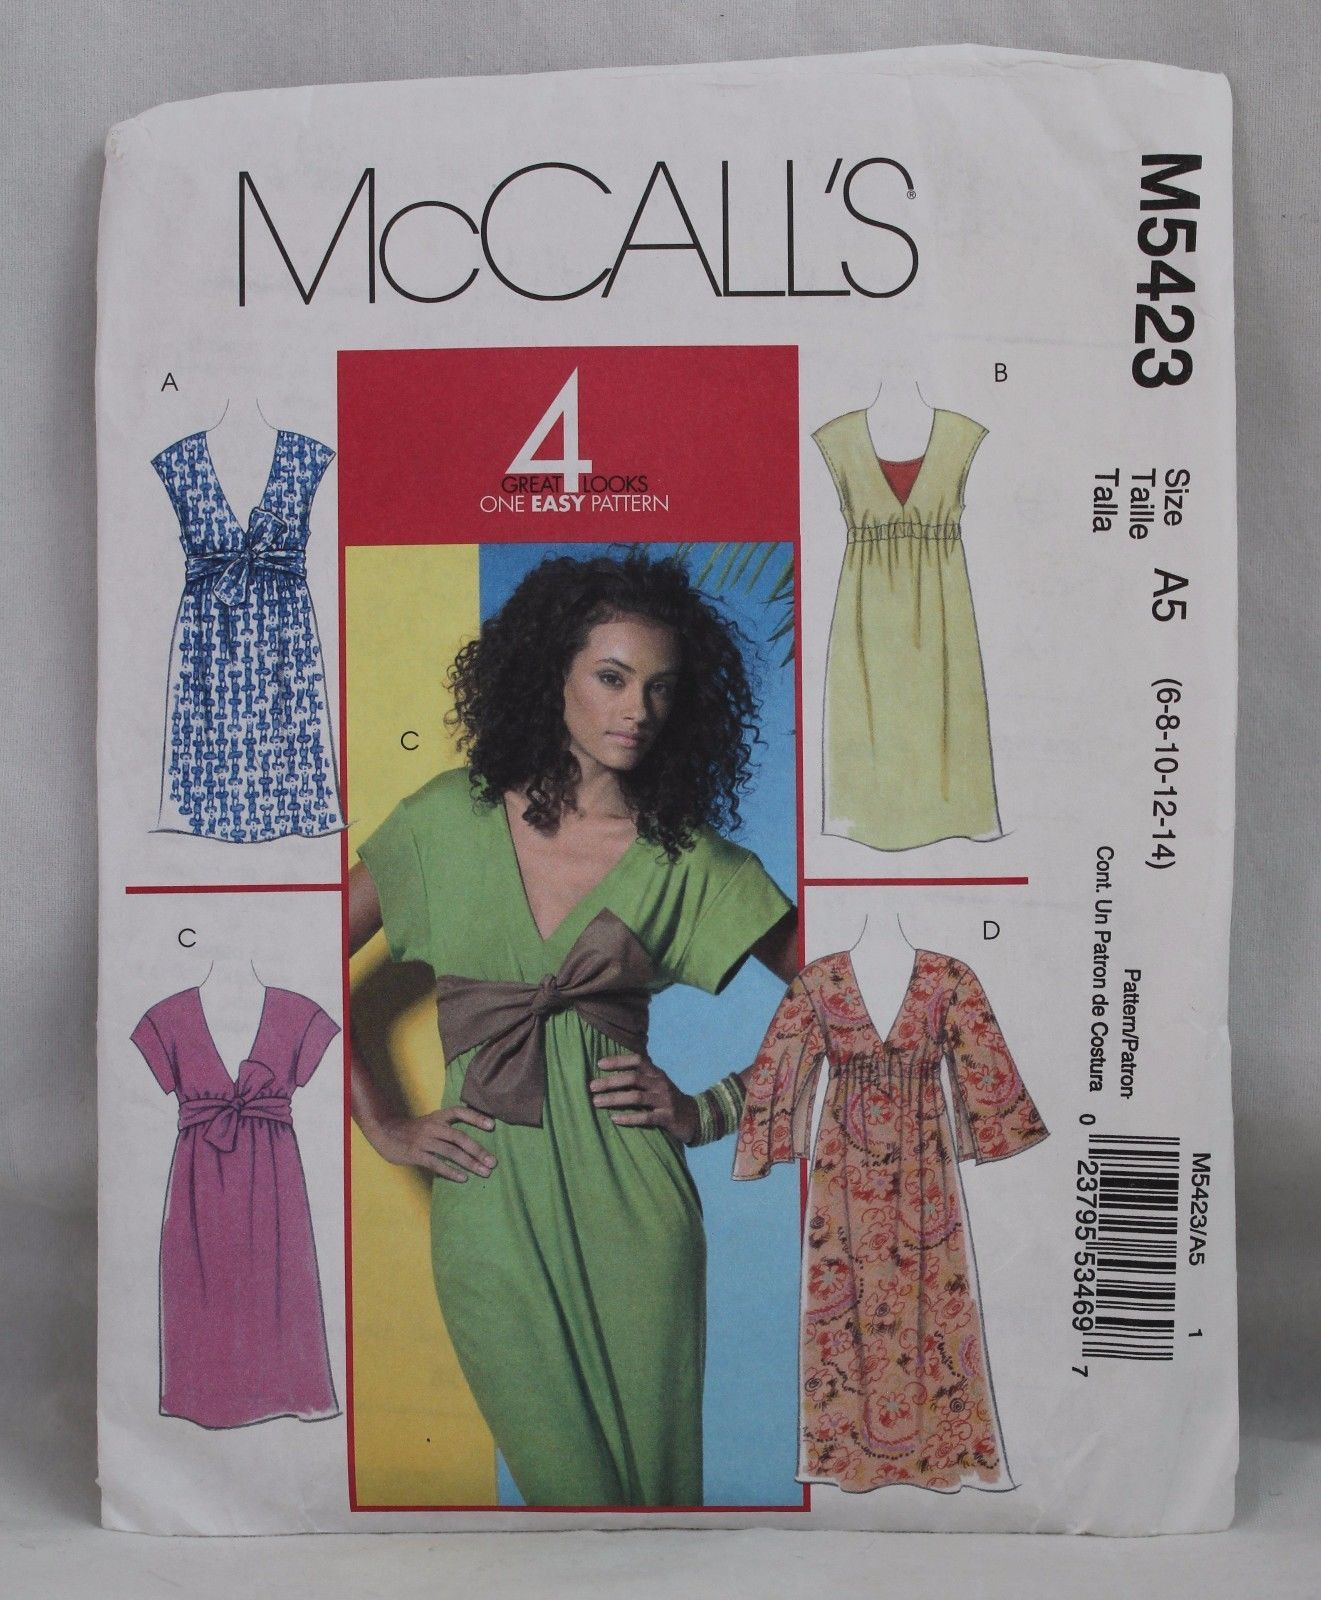 NEW//Used//Vintage Patterns Simplicity McCalls Sewing Quilting Vogue Butterick